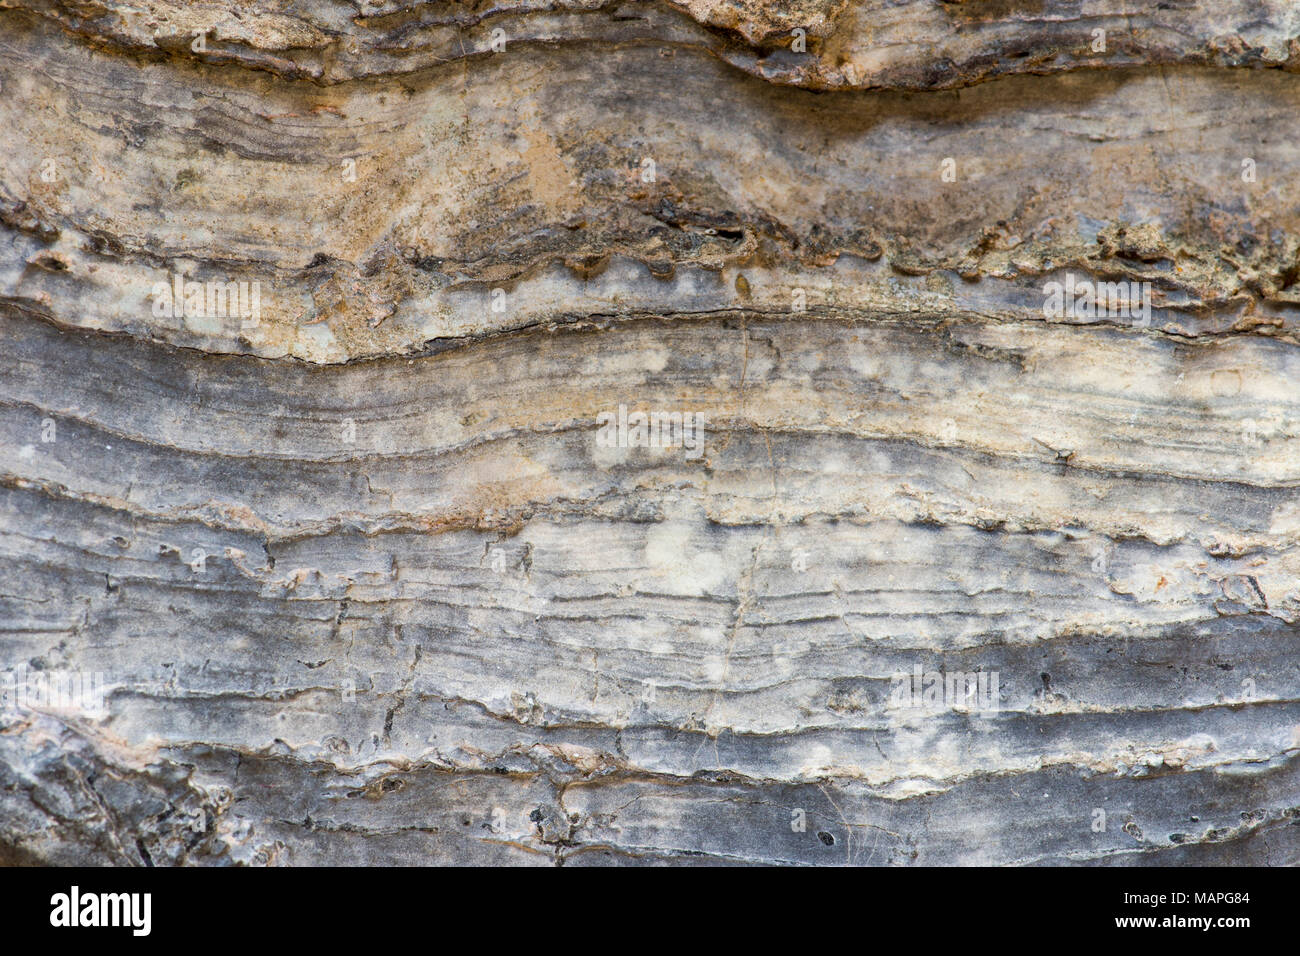 Close up of stromatolite layering (fossilized microbes from the late Precambrian or early Cambrian periods) - Stock Image